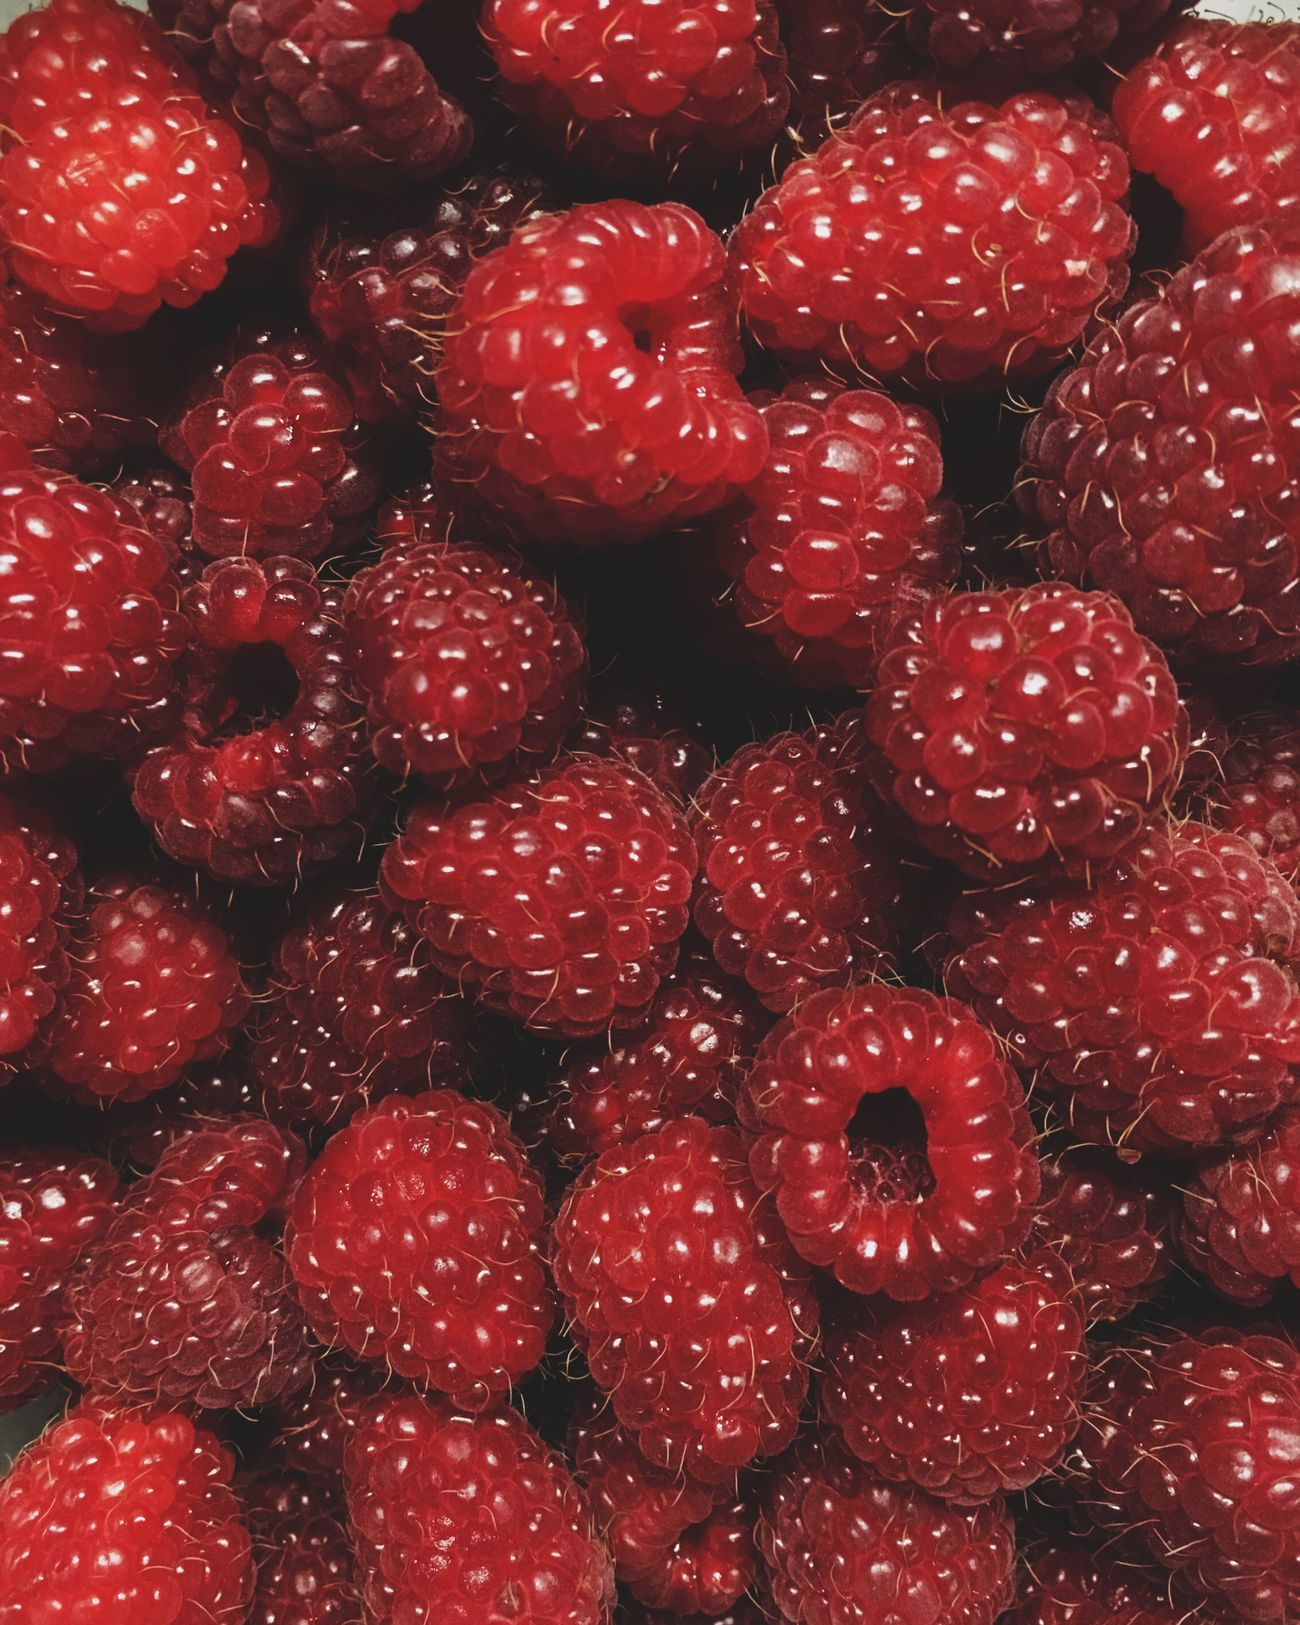 Summer IPhoneography Raspberry Food Berries Red Close Up Tasty Fresh